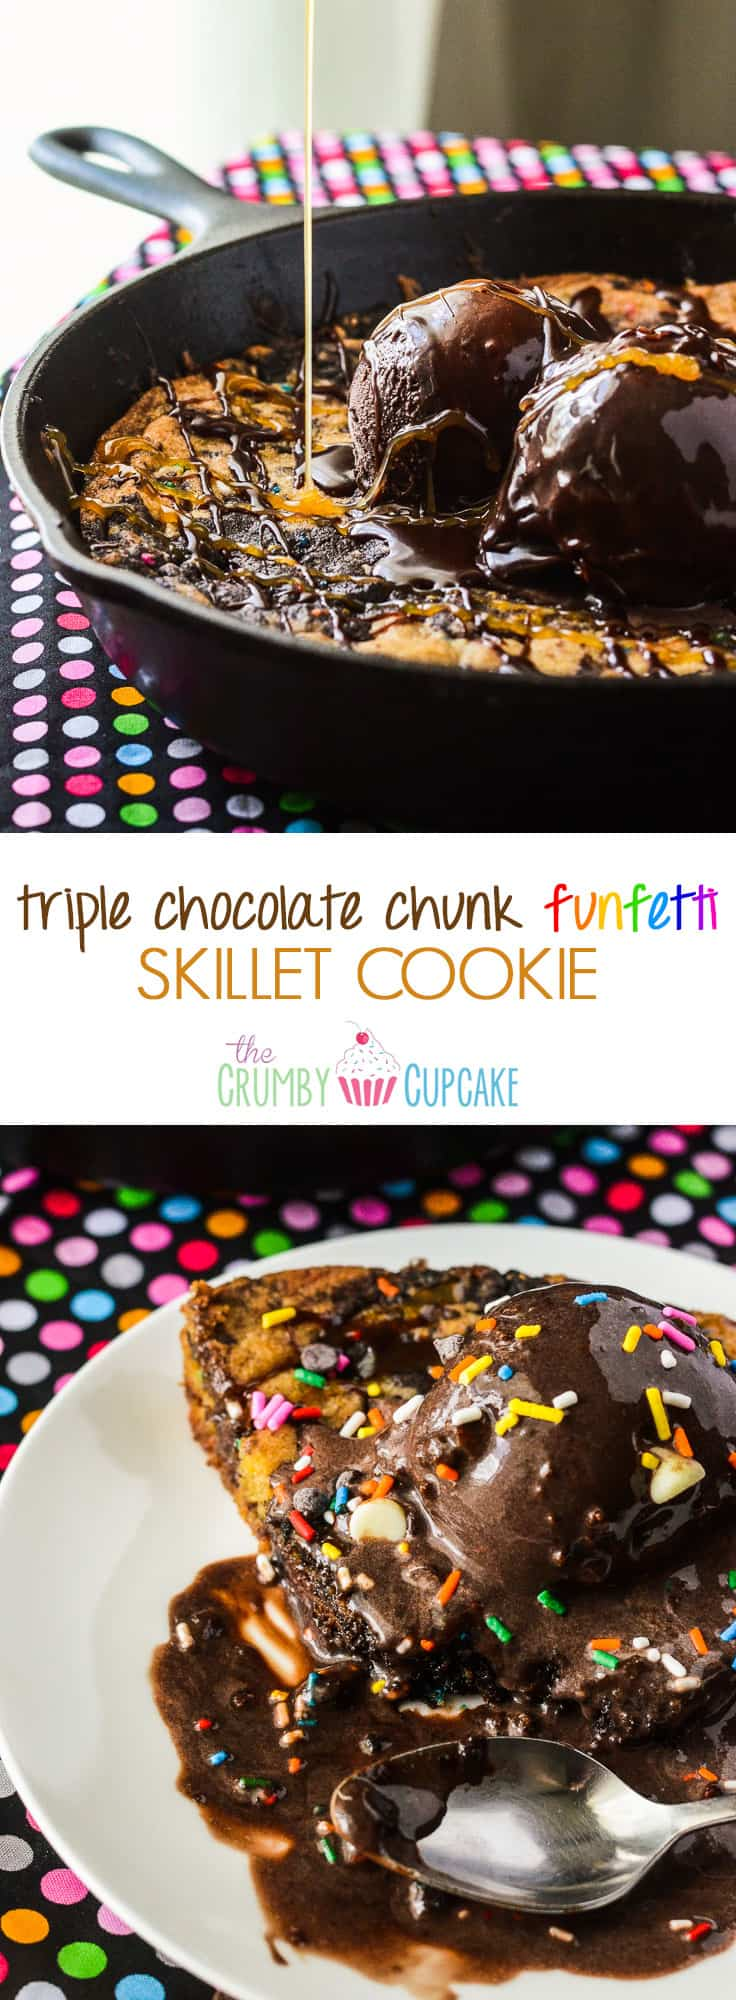 Triple Chocolate Chunk Funfetti Skillet Cookie | A celebration in every slice! Two kinds of cookie dough, stuffed with three kinds of chocolate & colorful sprinkles, then drizzled with caramel & even more chocolate!